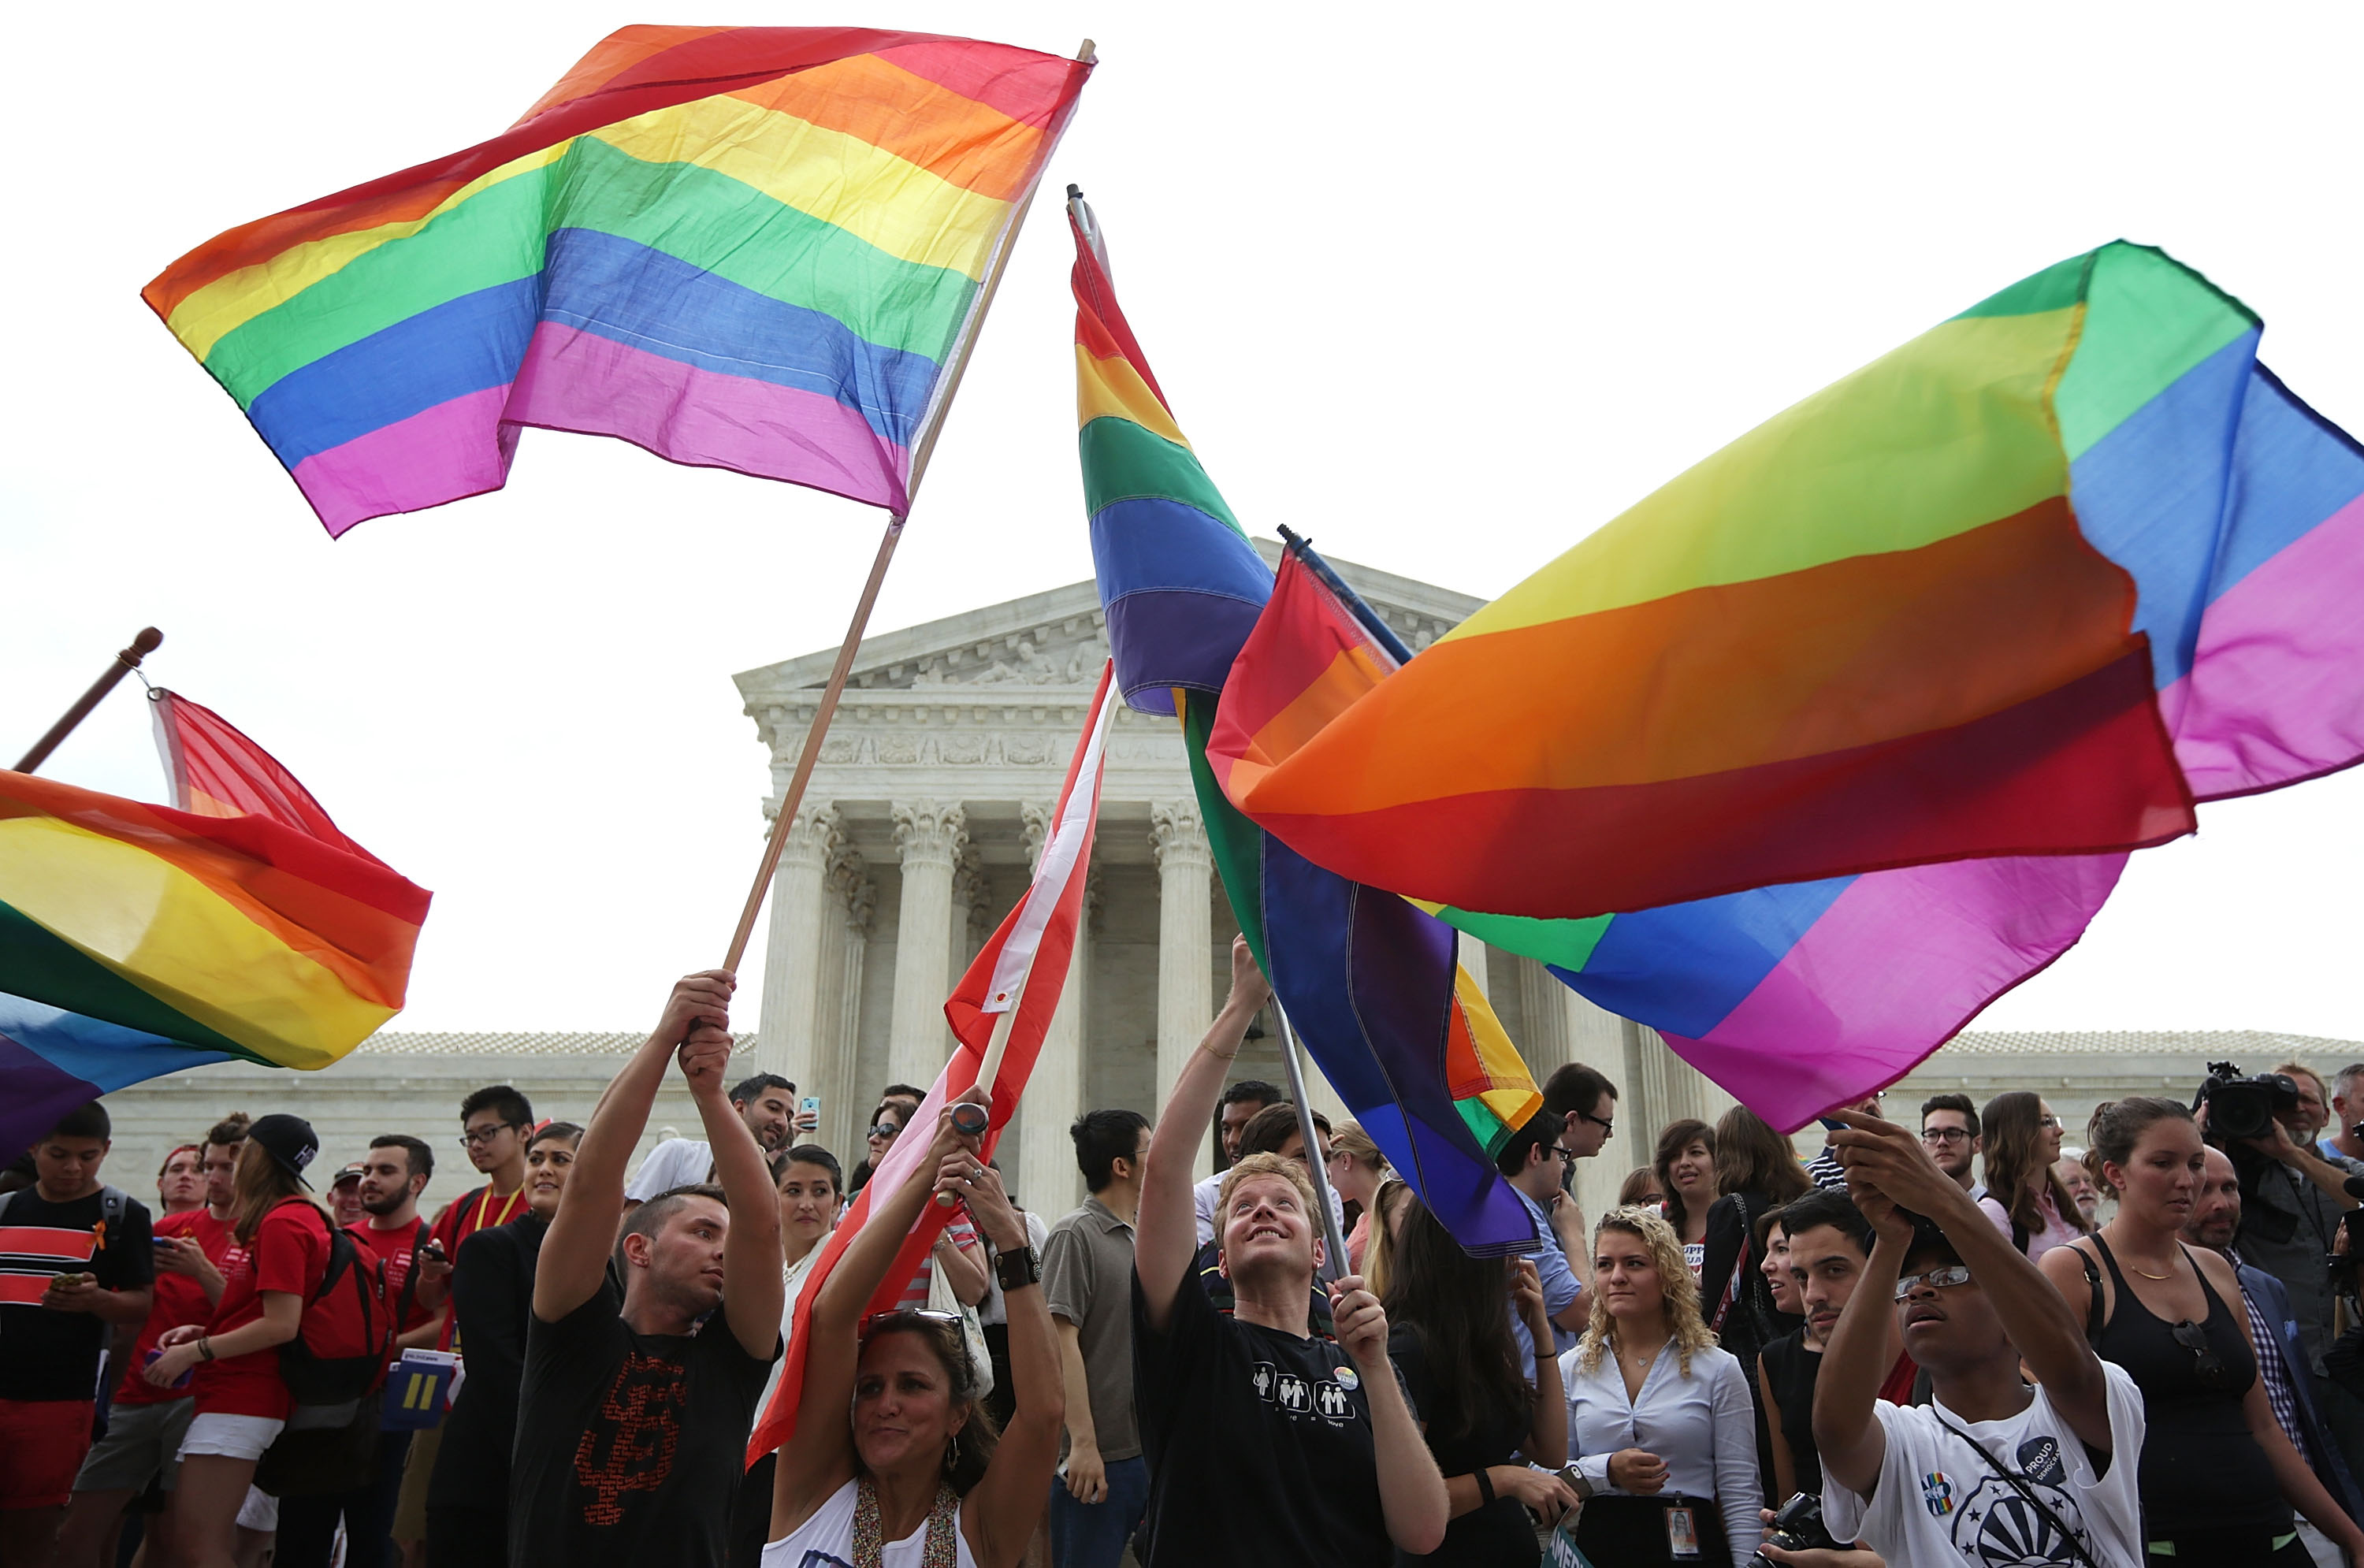 Same-sex marriage supporters rejoice after the U.S Supreme Court hands down a ruling regarding same-sex marriage June 26, 2015 outside the Supreme Court in Washington, DC. The high court ruled that same-sex couples have the right to marry in all 50 states.